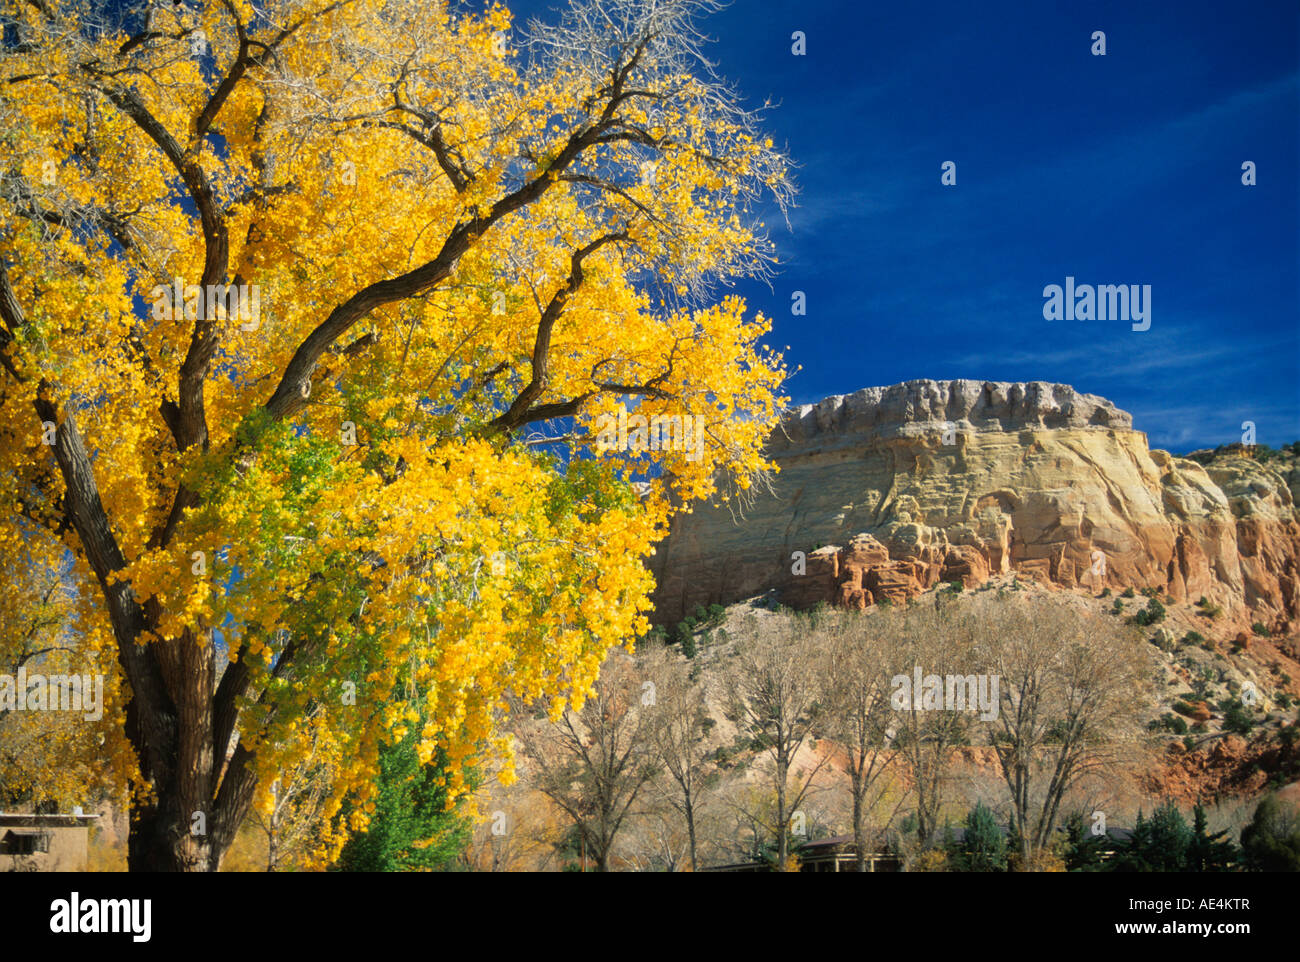 New mexico rio arriba county abiquiu - Cottonwood Rio Arriba County New Mexico United States Of America North America